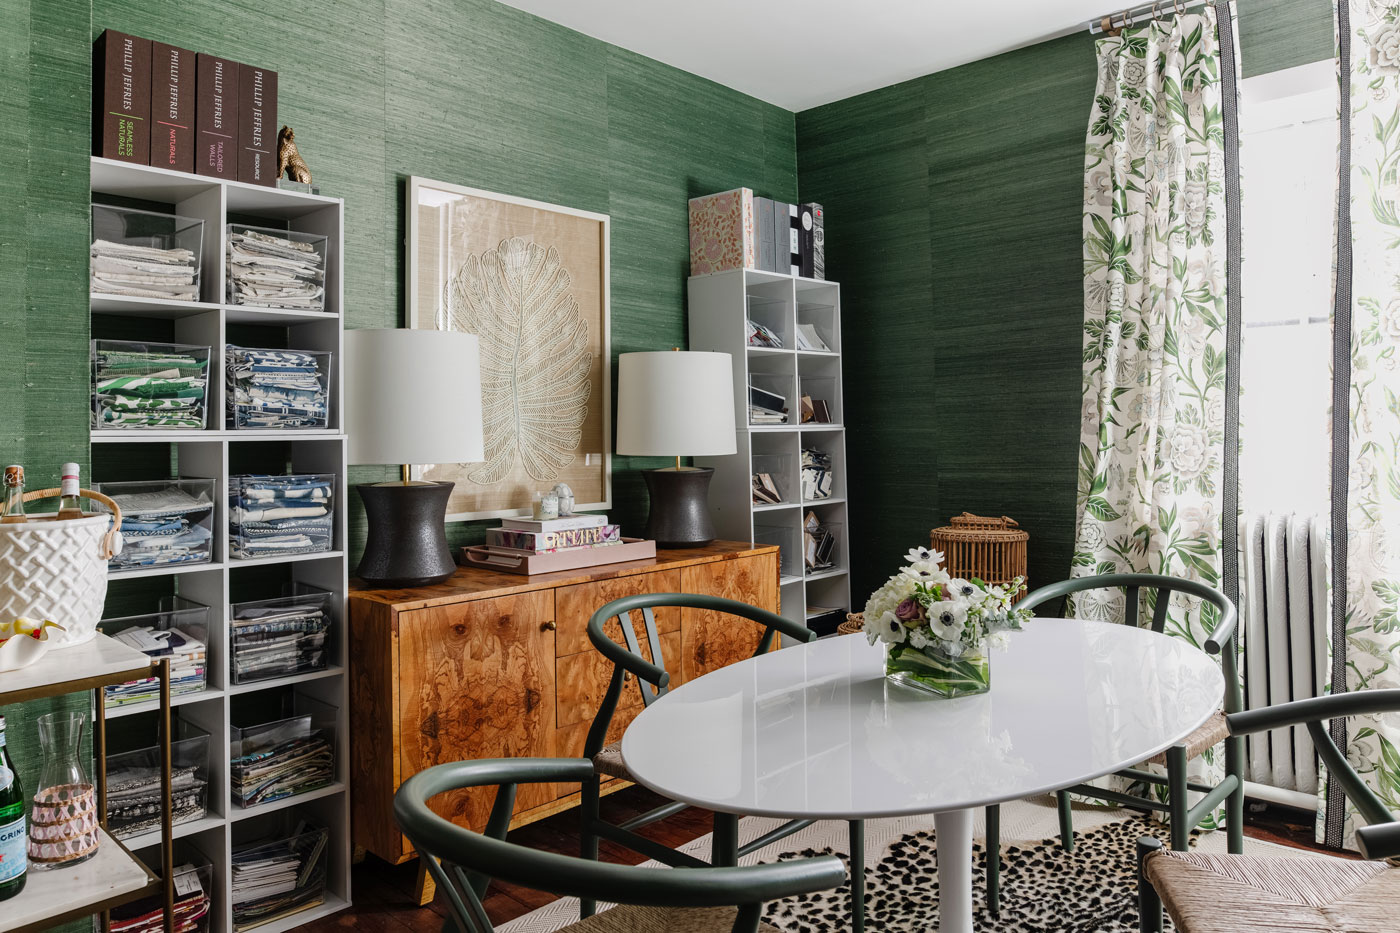 office with oval table in the center and green grasscloth phillip jeffries wallpaper